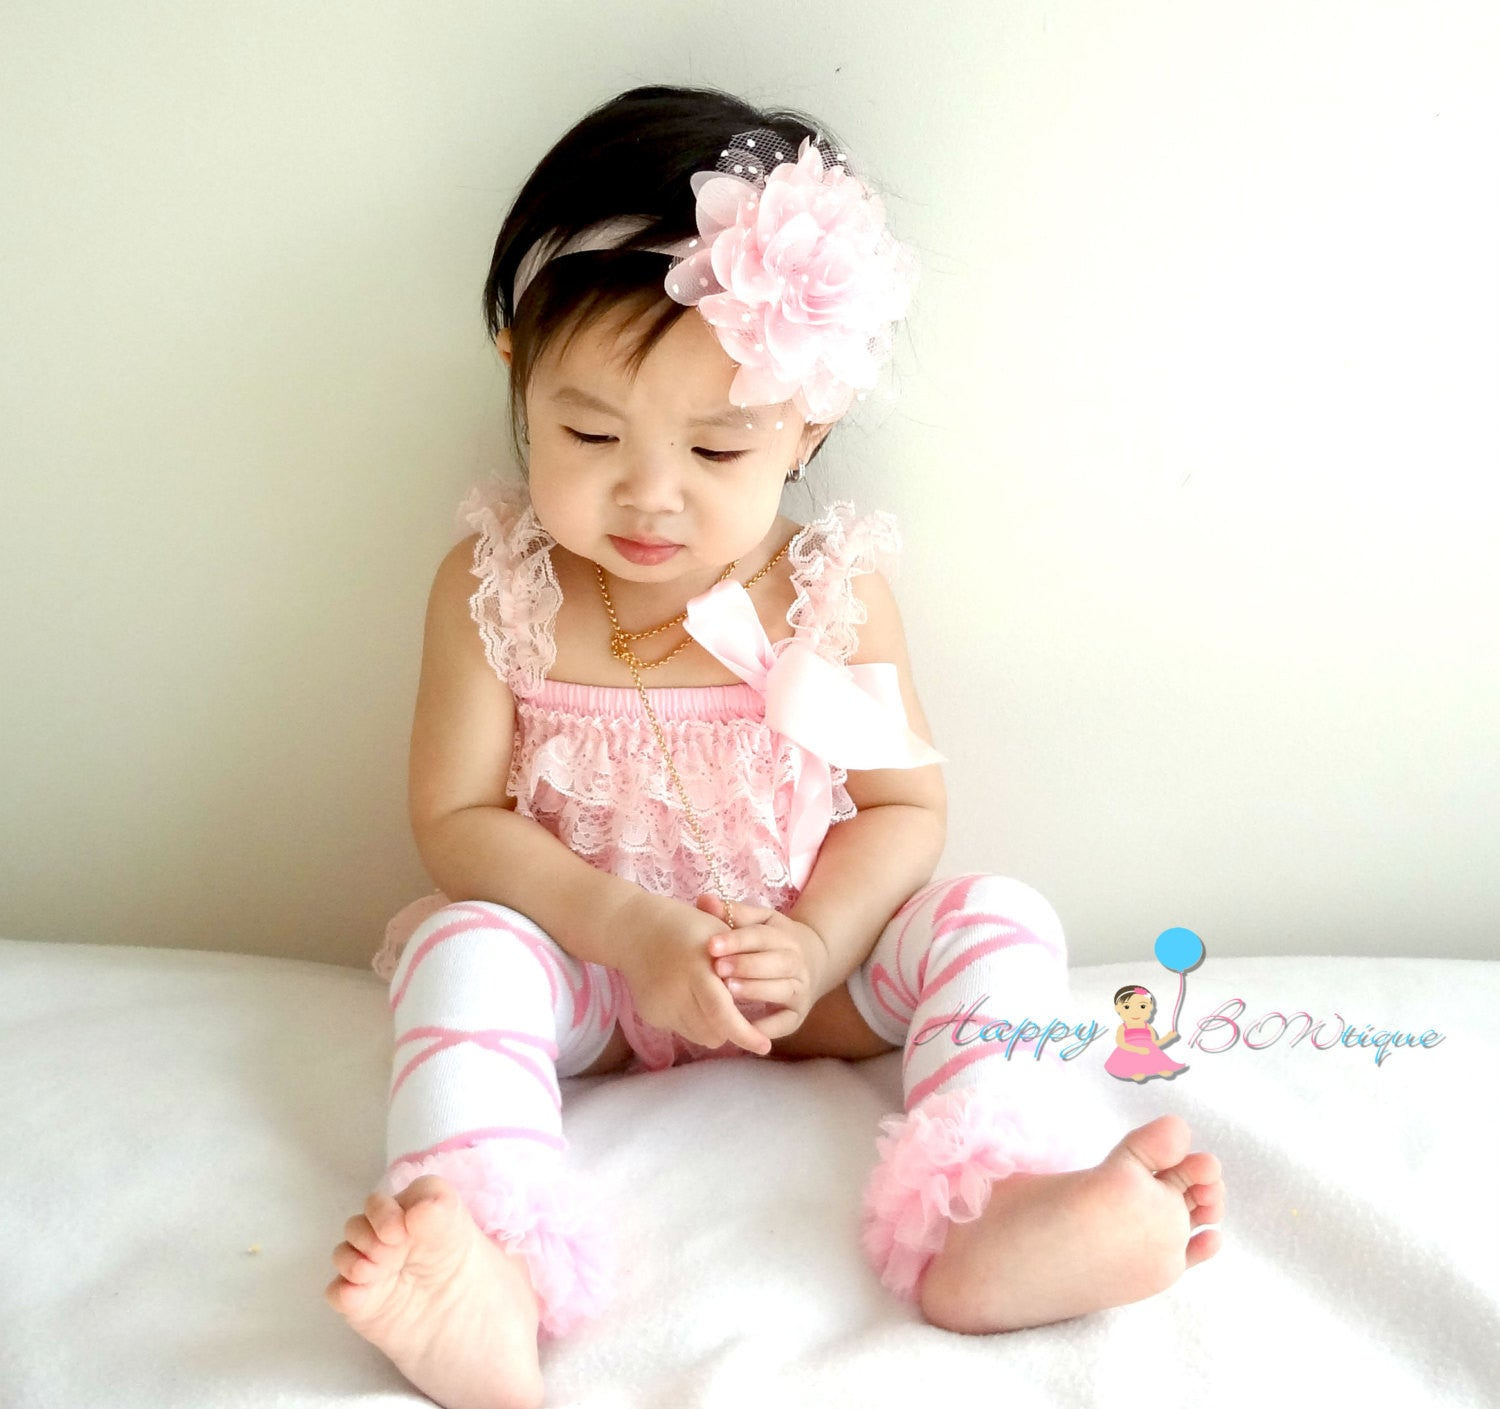 Ballerina Tutus baby Pink leg warmers - Happy BOWtique - children's clothing, Baby Girl clothing